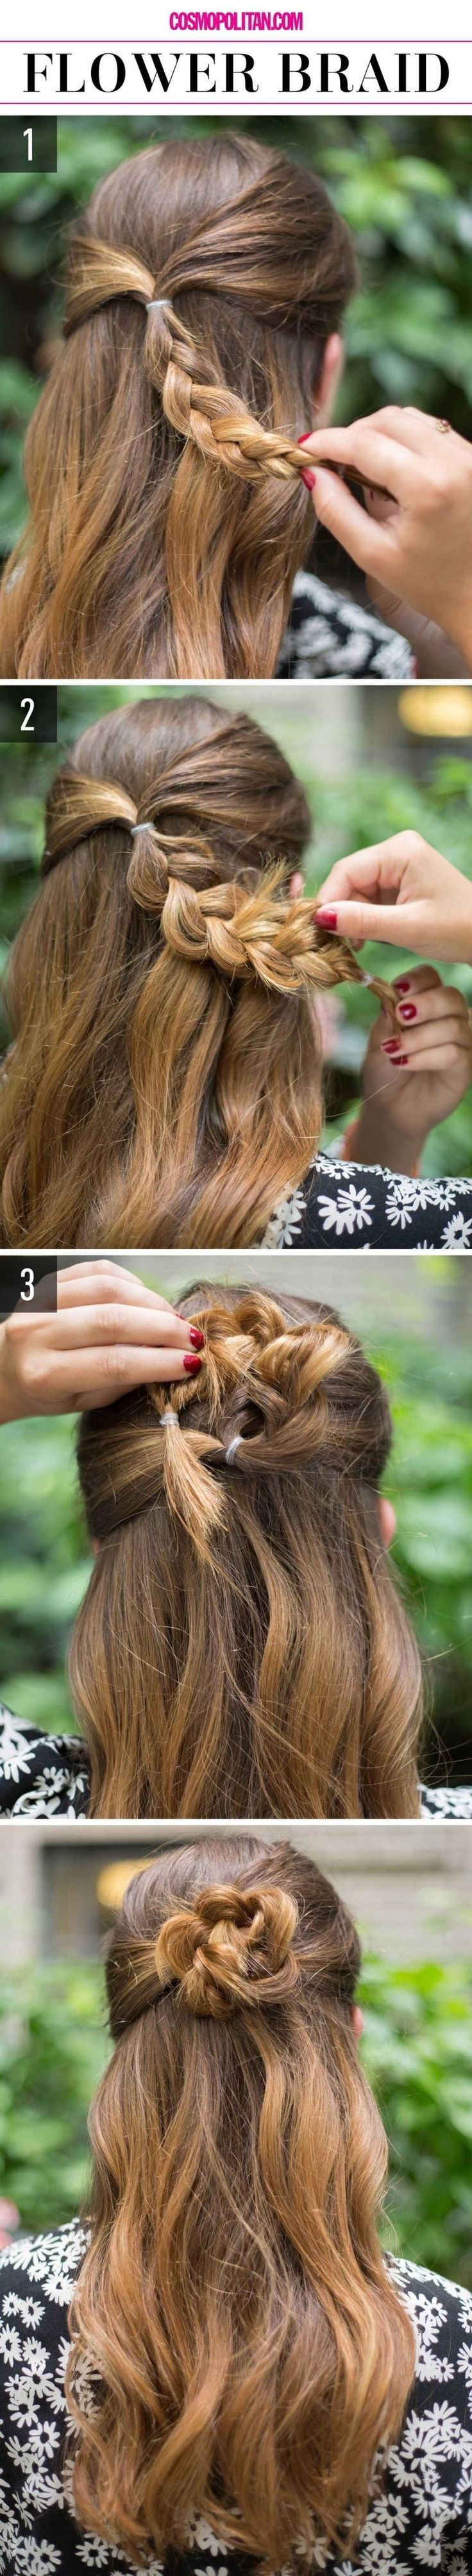 5 Minute Hairstyles For Busy Mornings |Hairstyles | Busy |Mornings